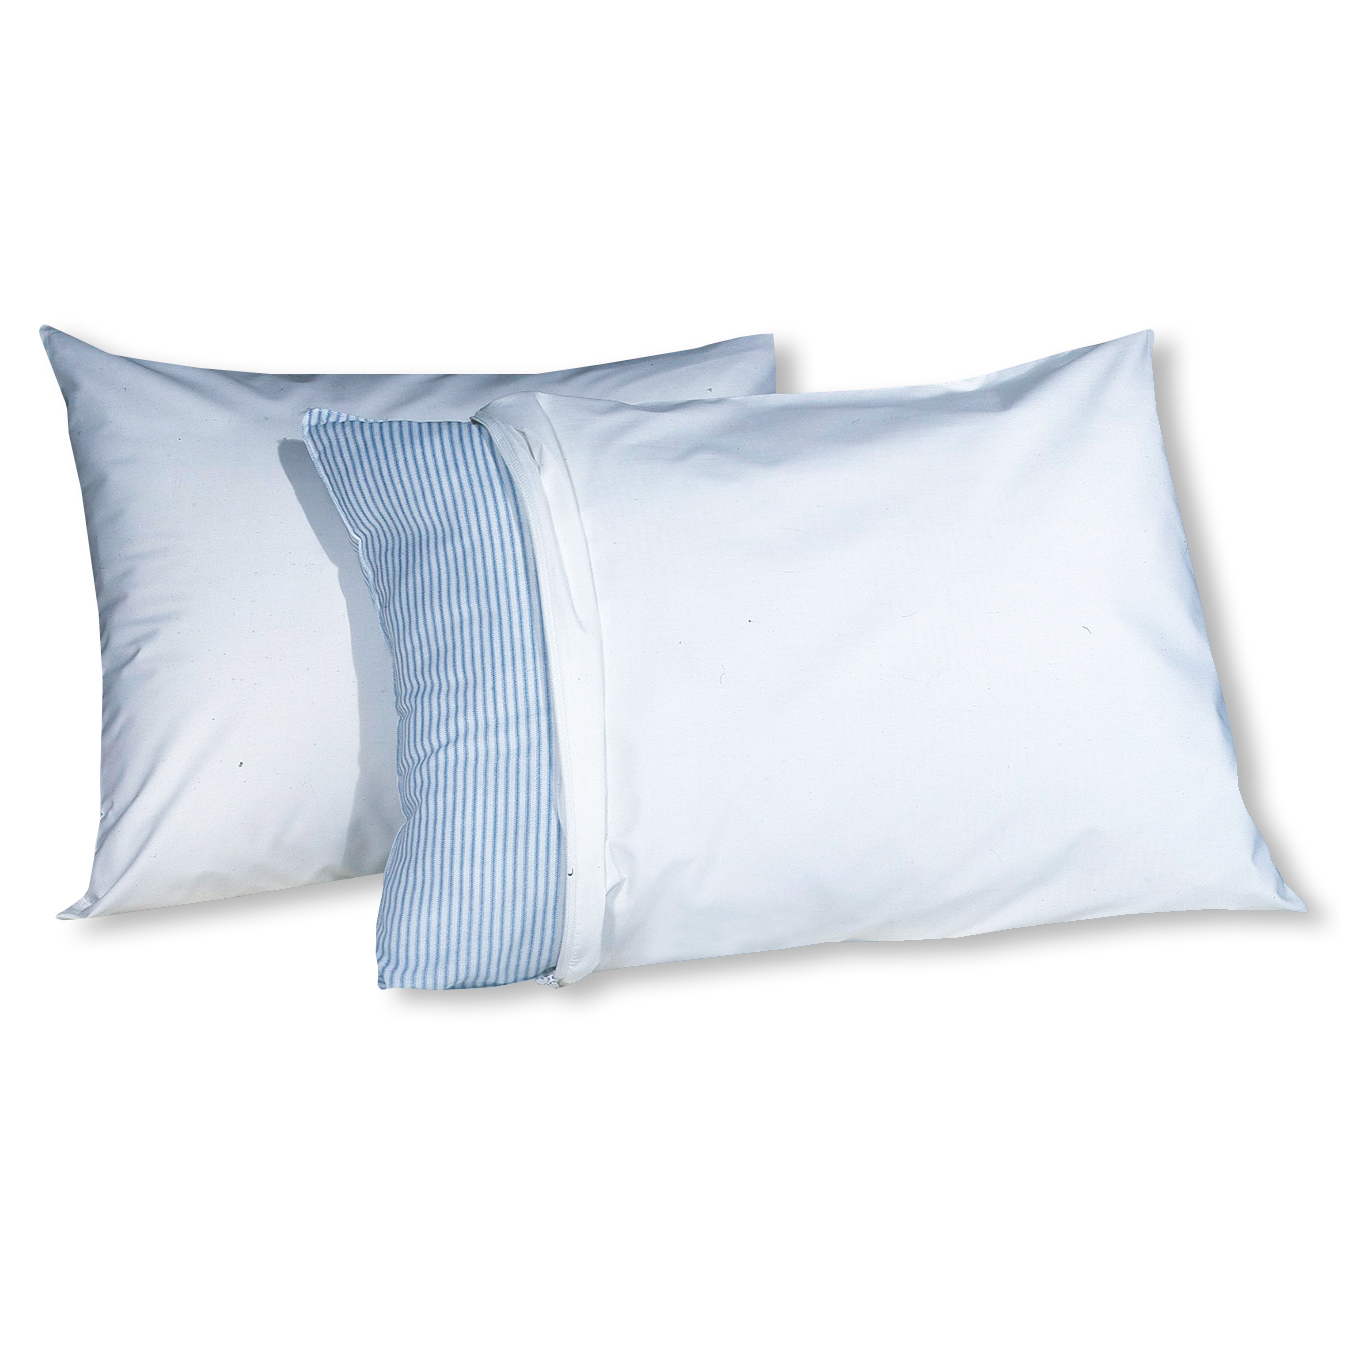 Fresh Ideas 180 Thread Count Standard Cotton Rich Pillow Protectors 2 ct Pack by Levinsohn Textile